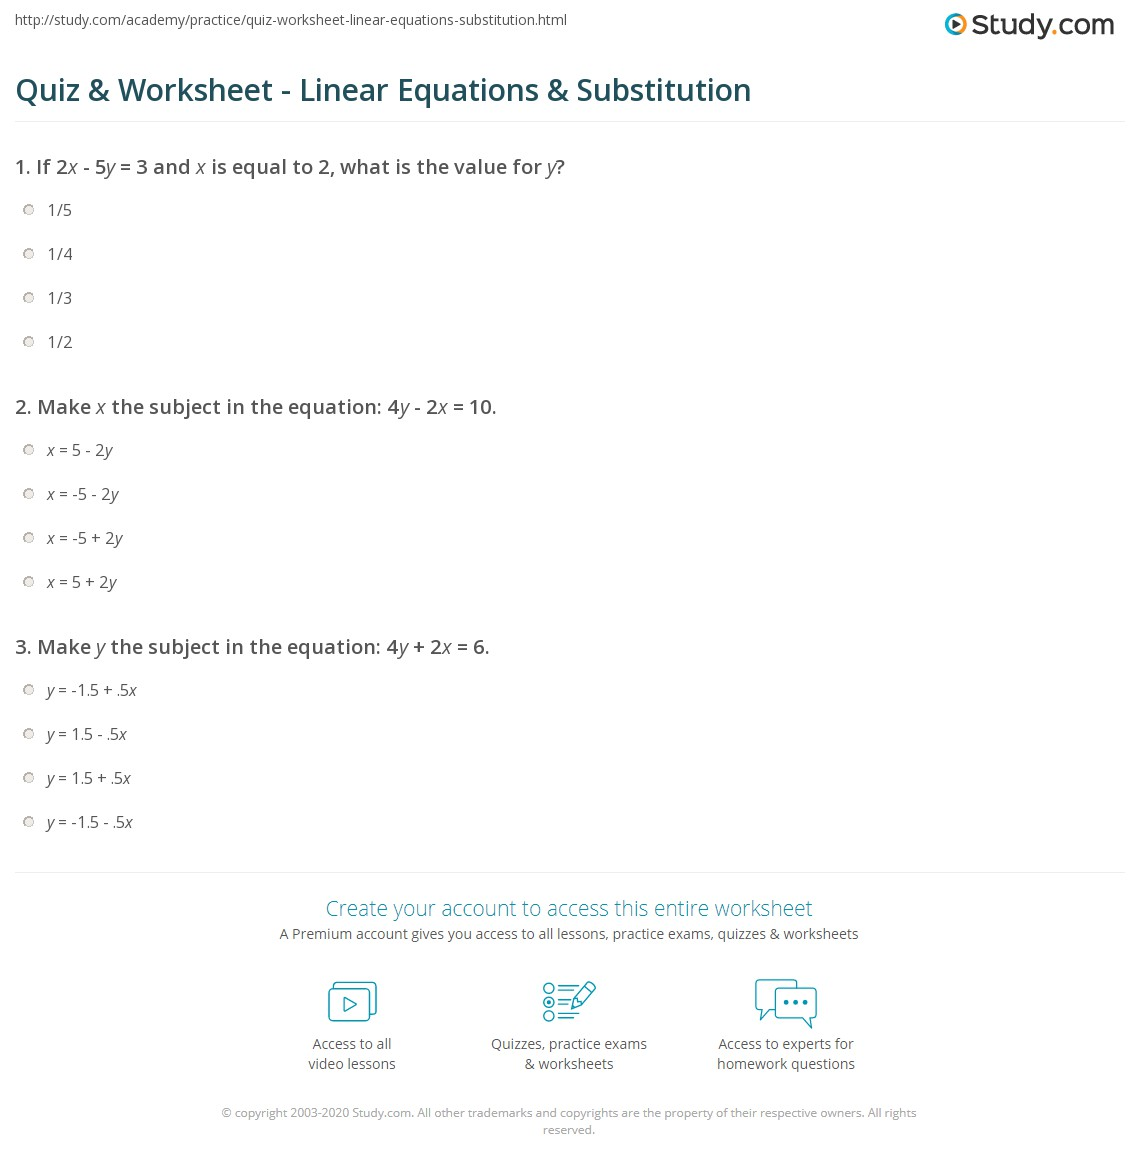 quiz & worksheet - linear equations & substitution | study